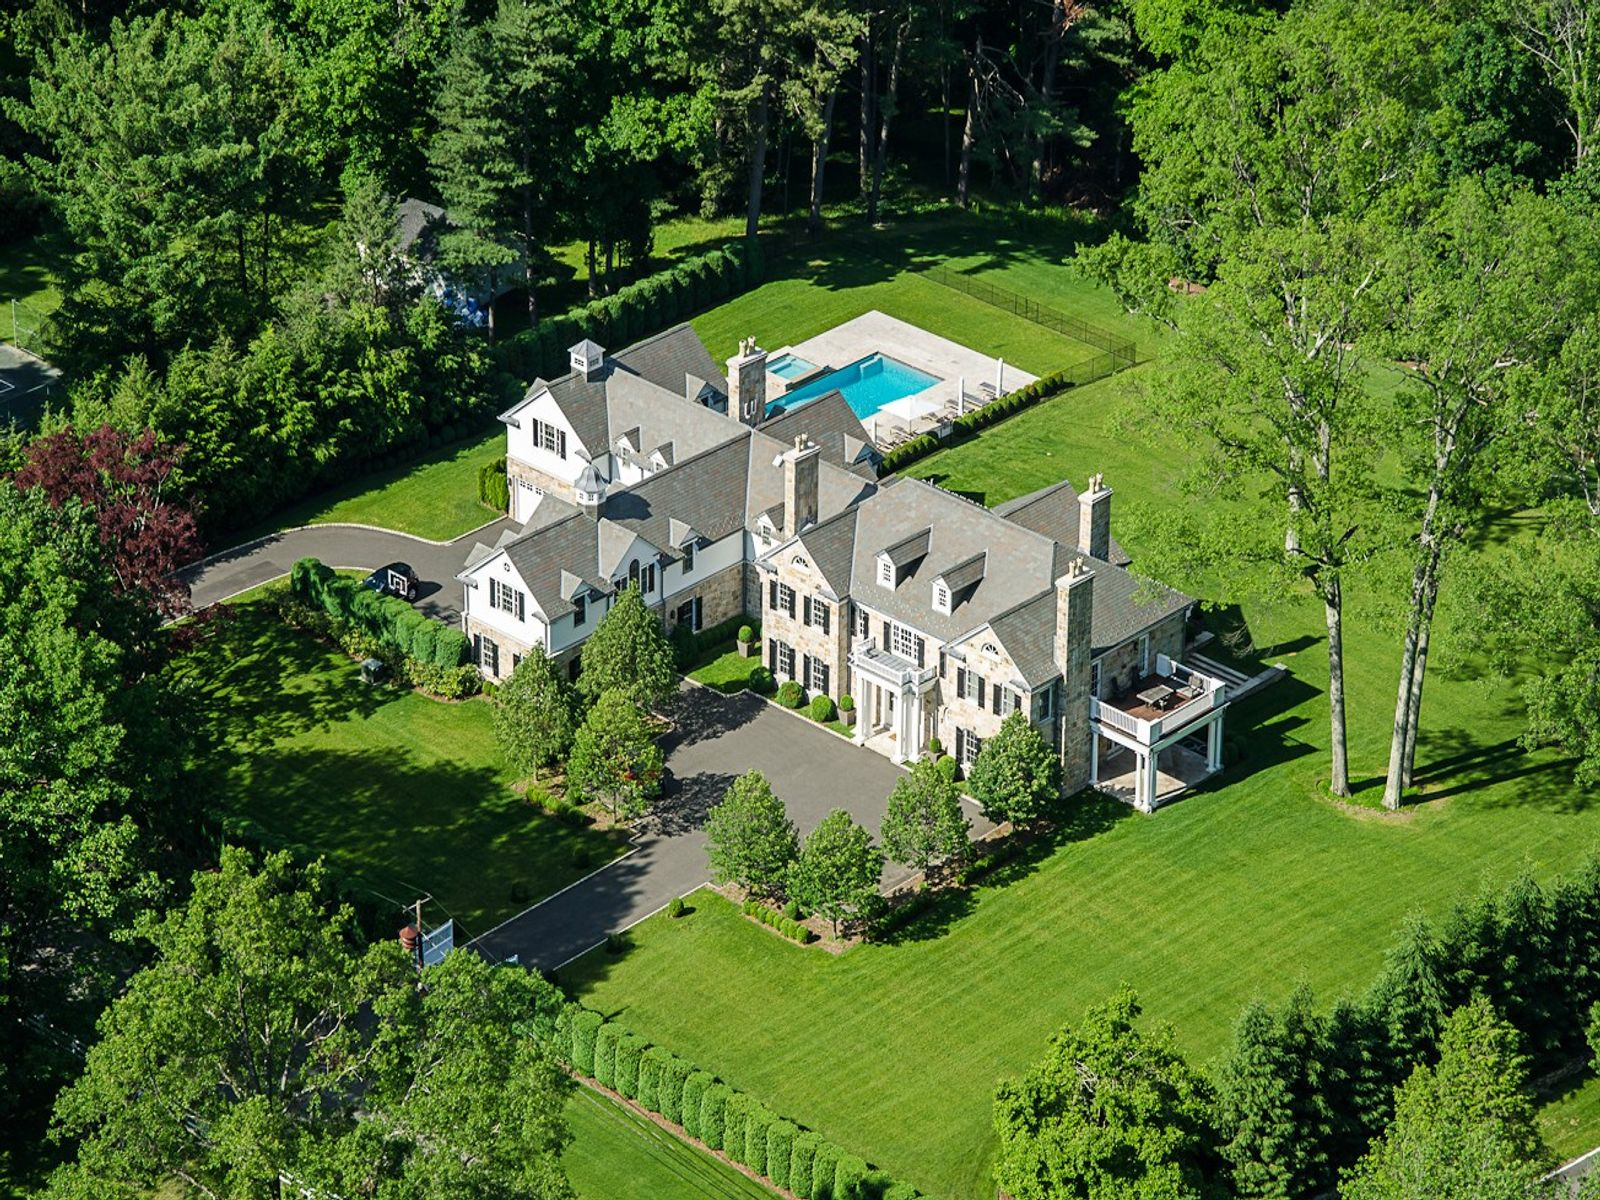 Premiere Location - Important Estate, Greenwich CT Single Family Home - Greenwich Real Estate